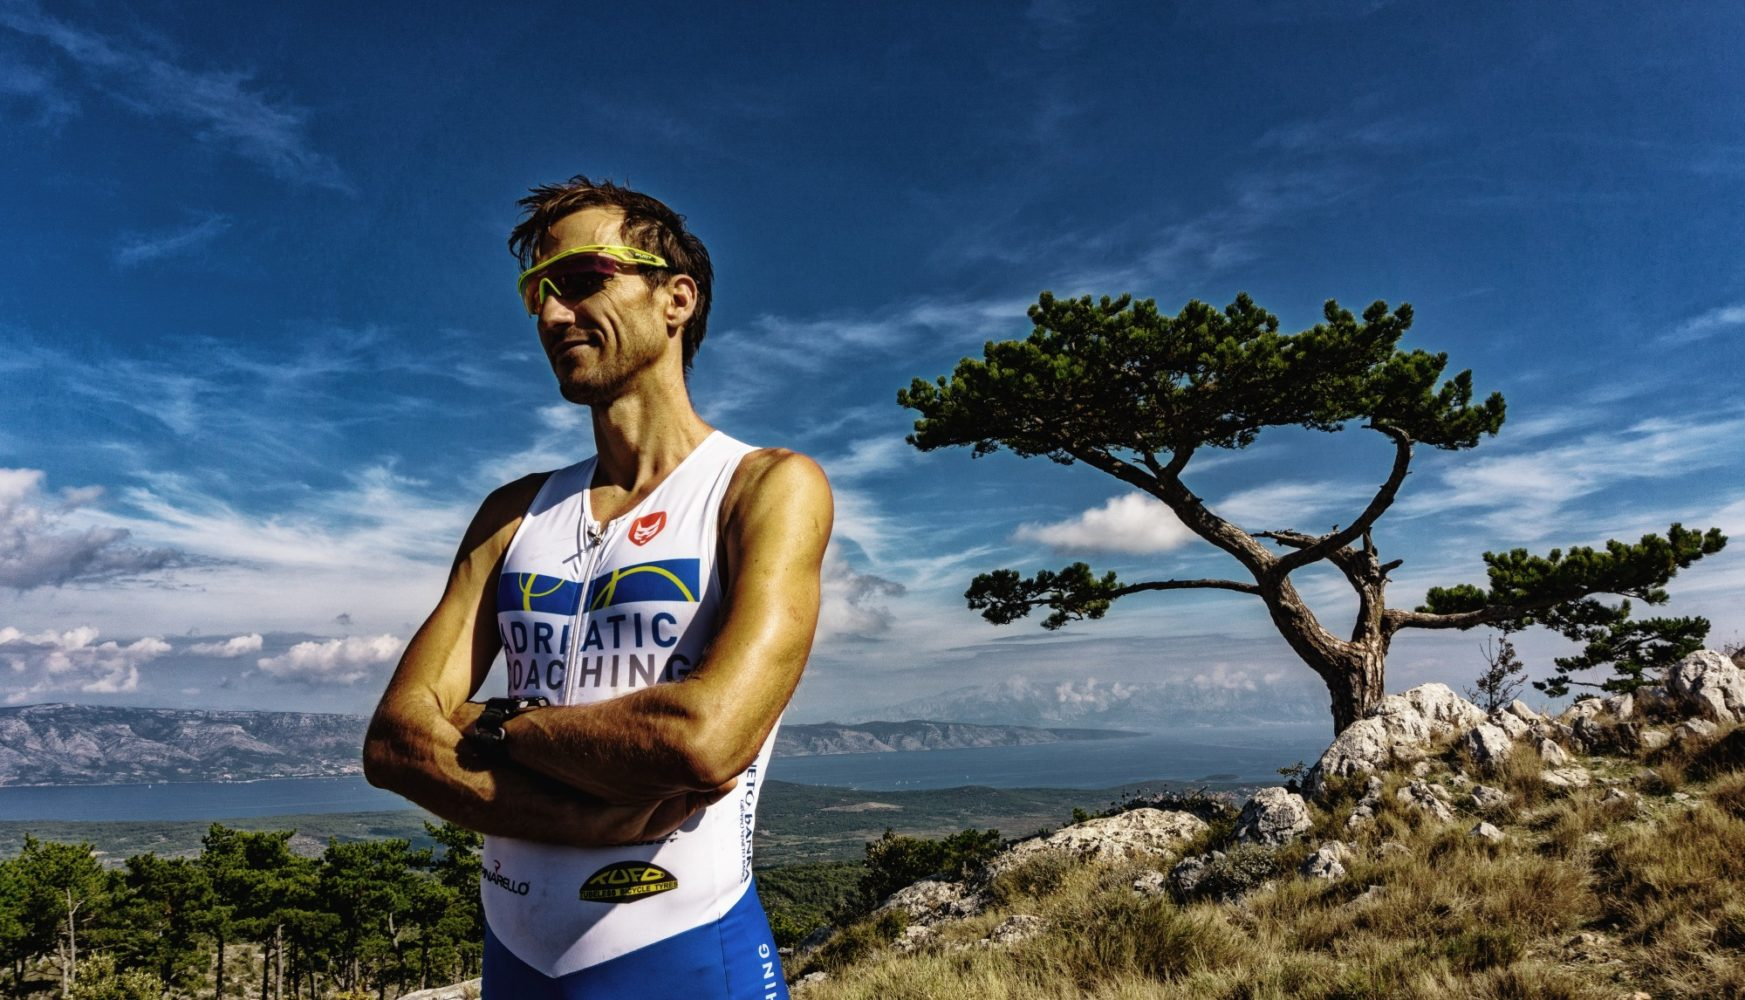 dejan patrcevic is official ambasador I FEEL SLOVENIA Ironman70.3 Slovenian Istria